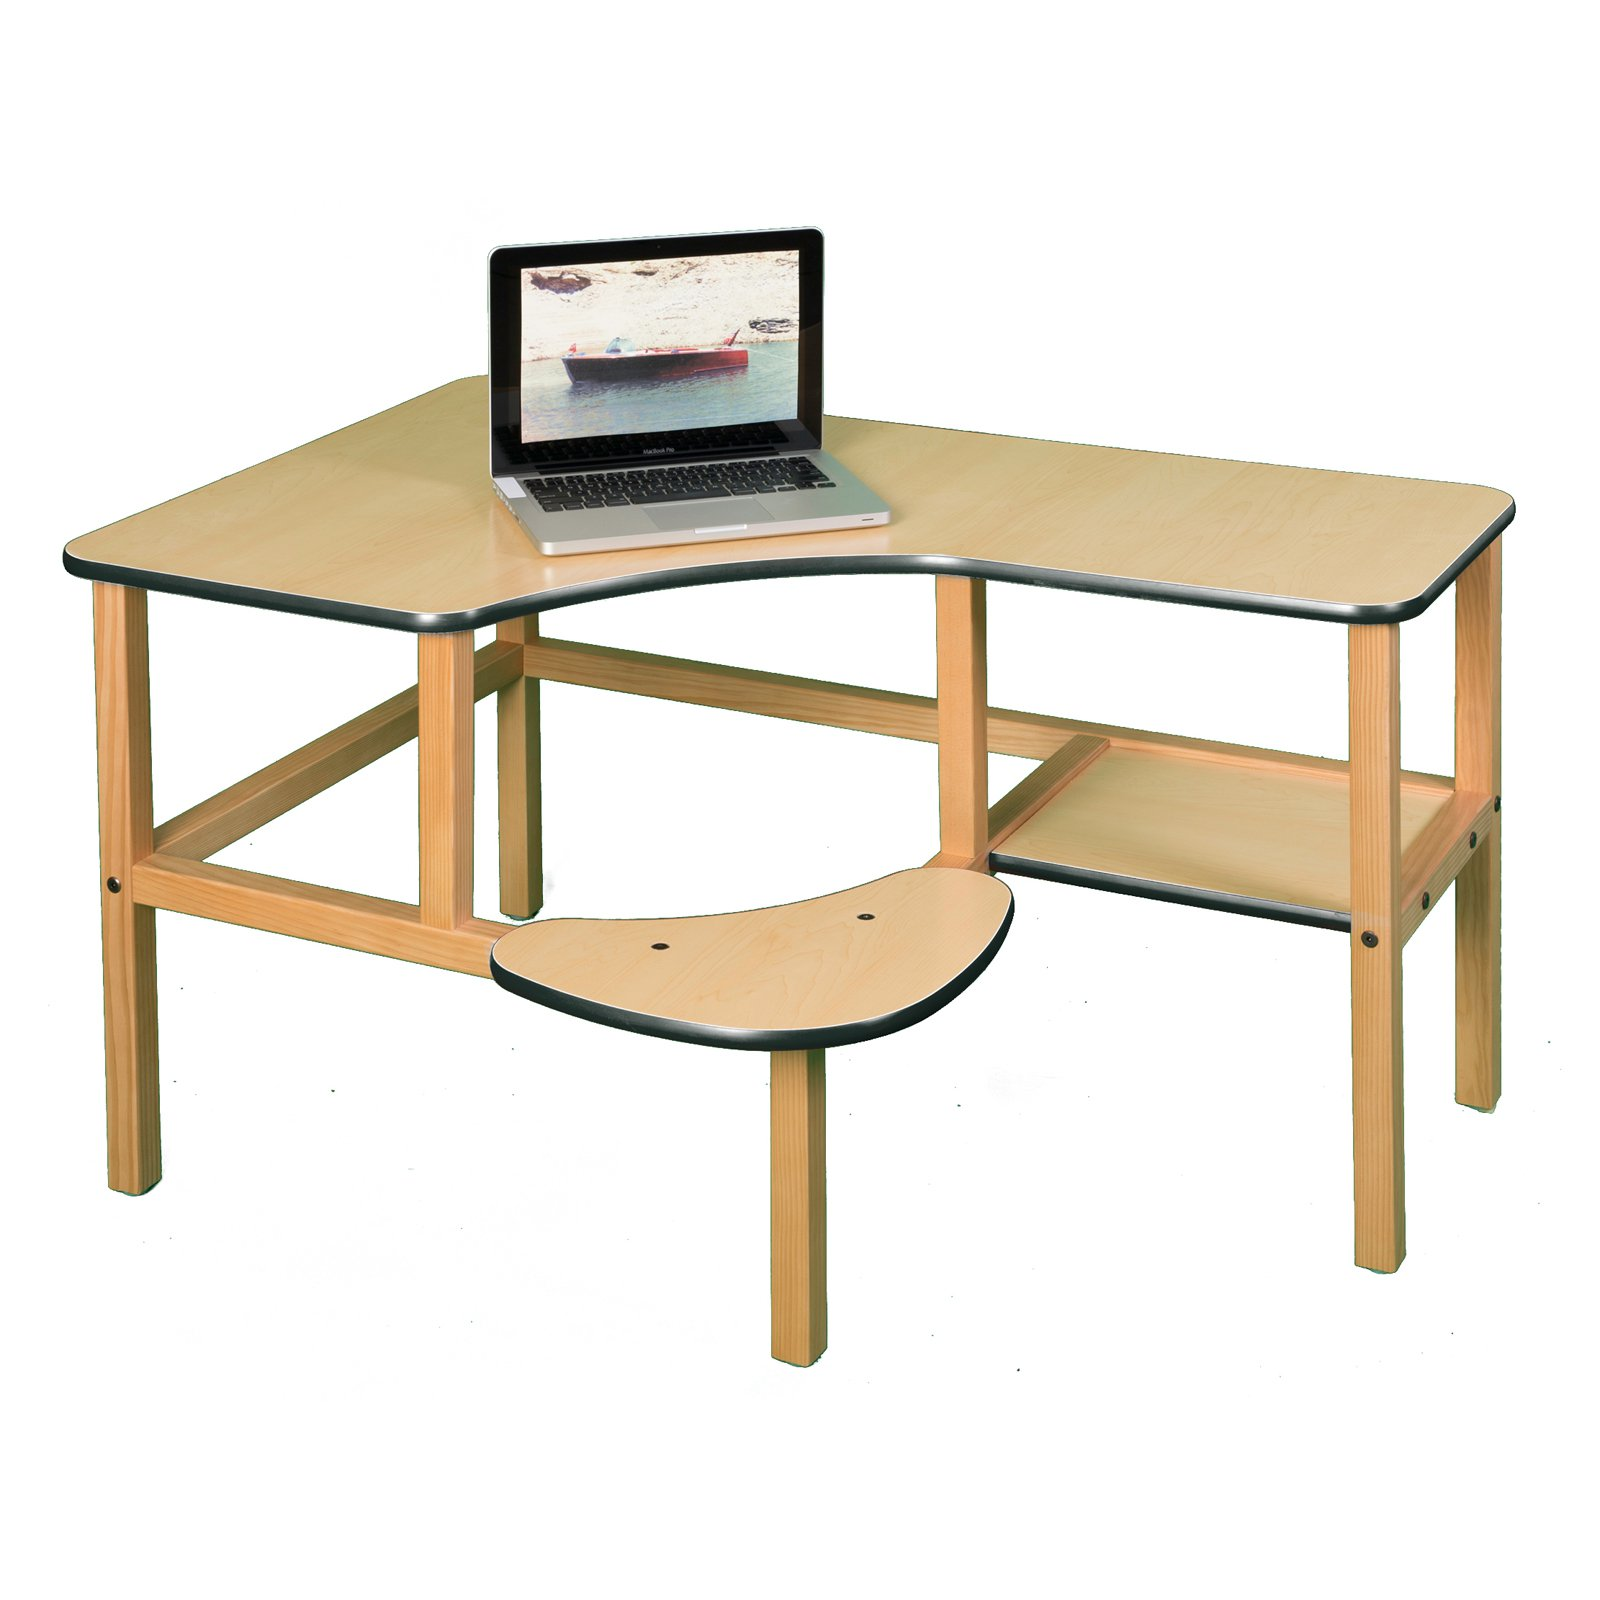 Wild Zoo Grade School Computer Desk - White